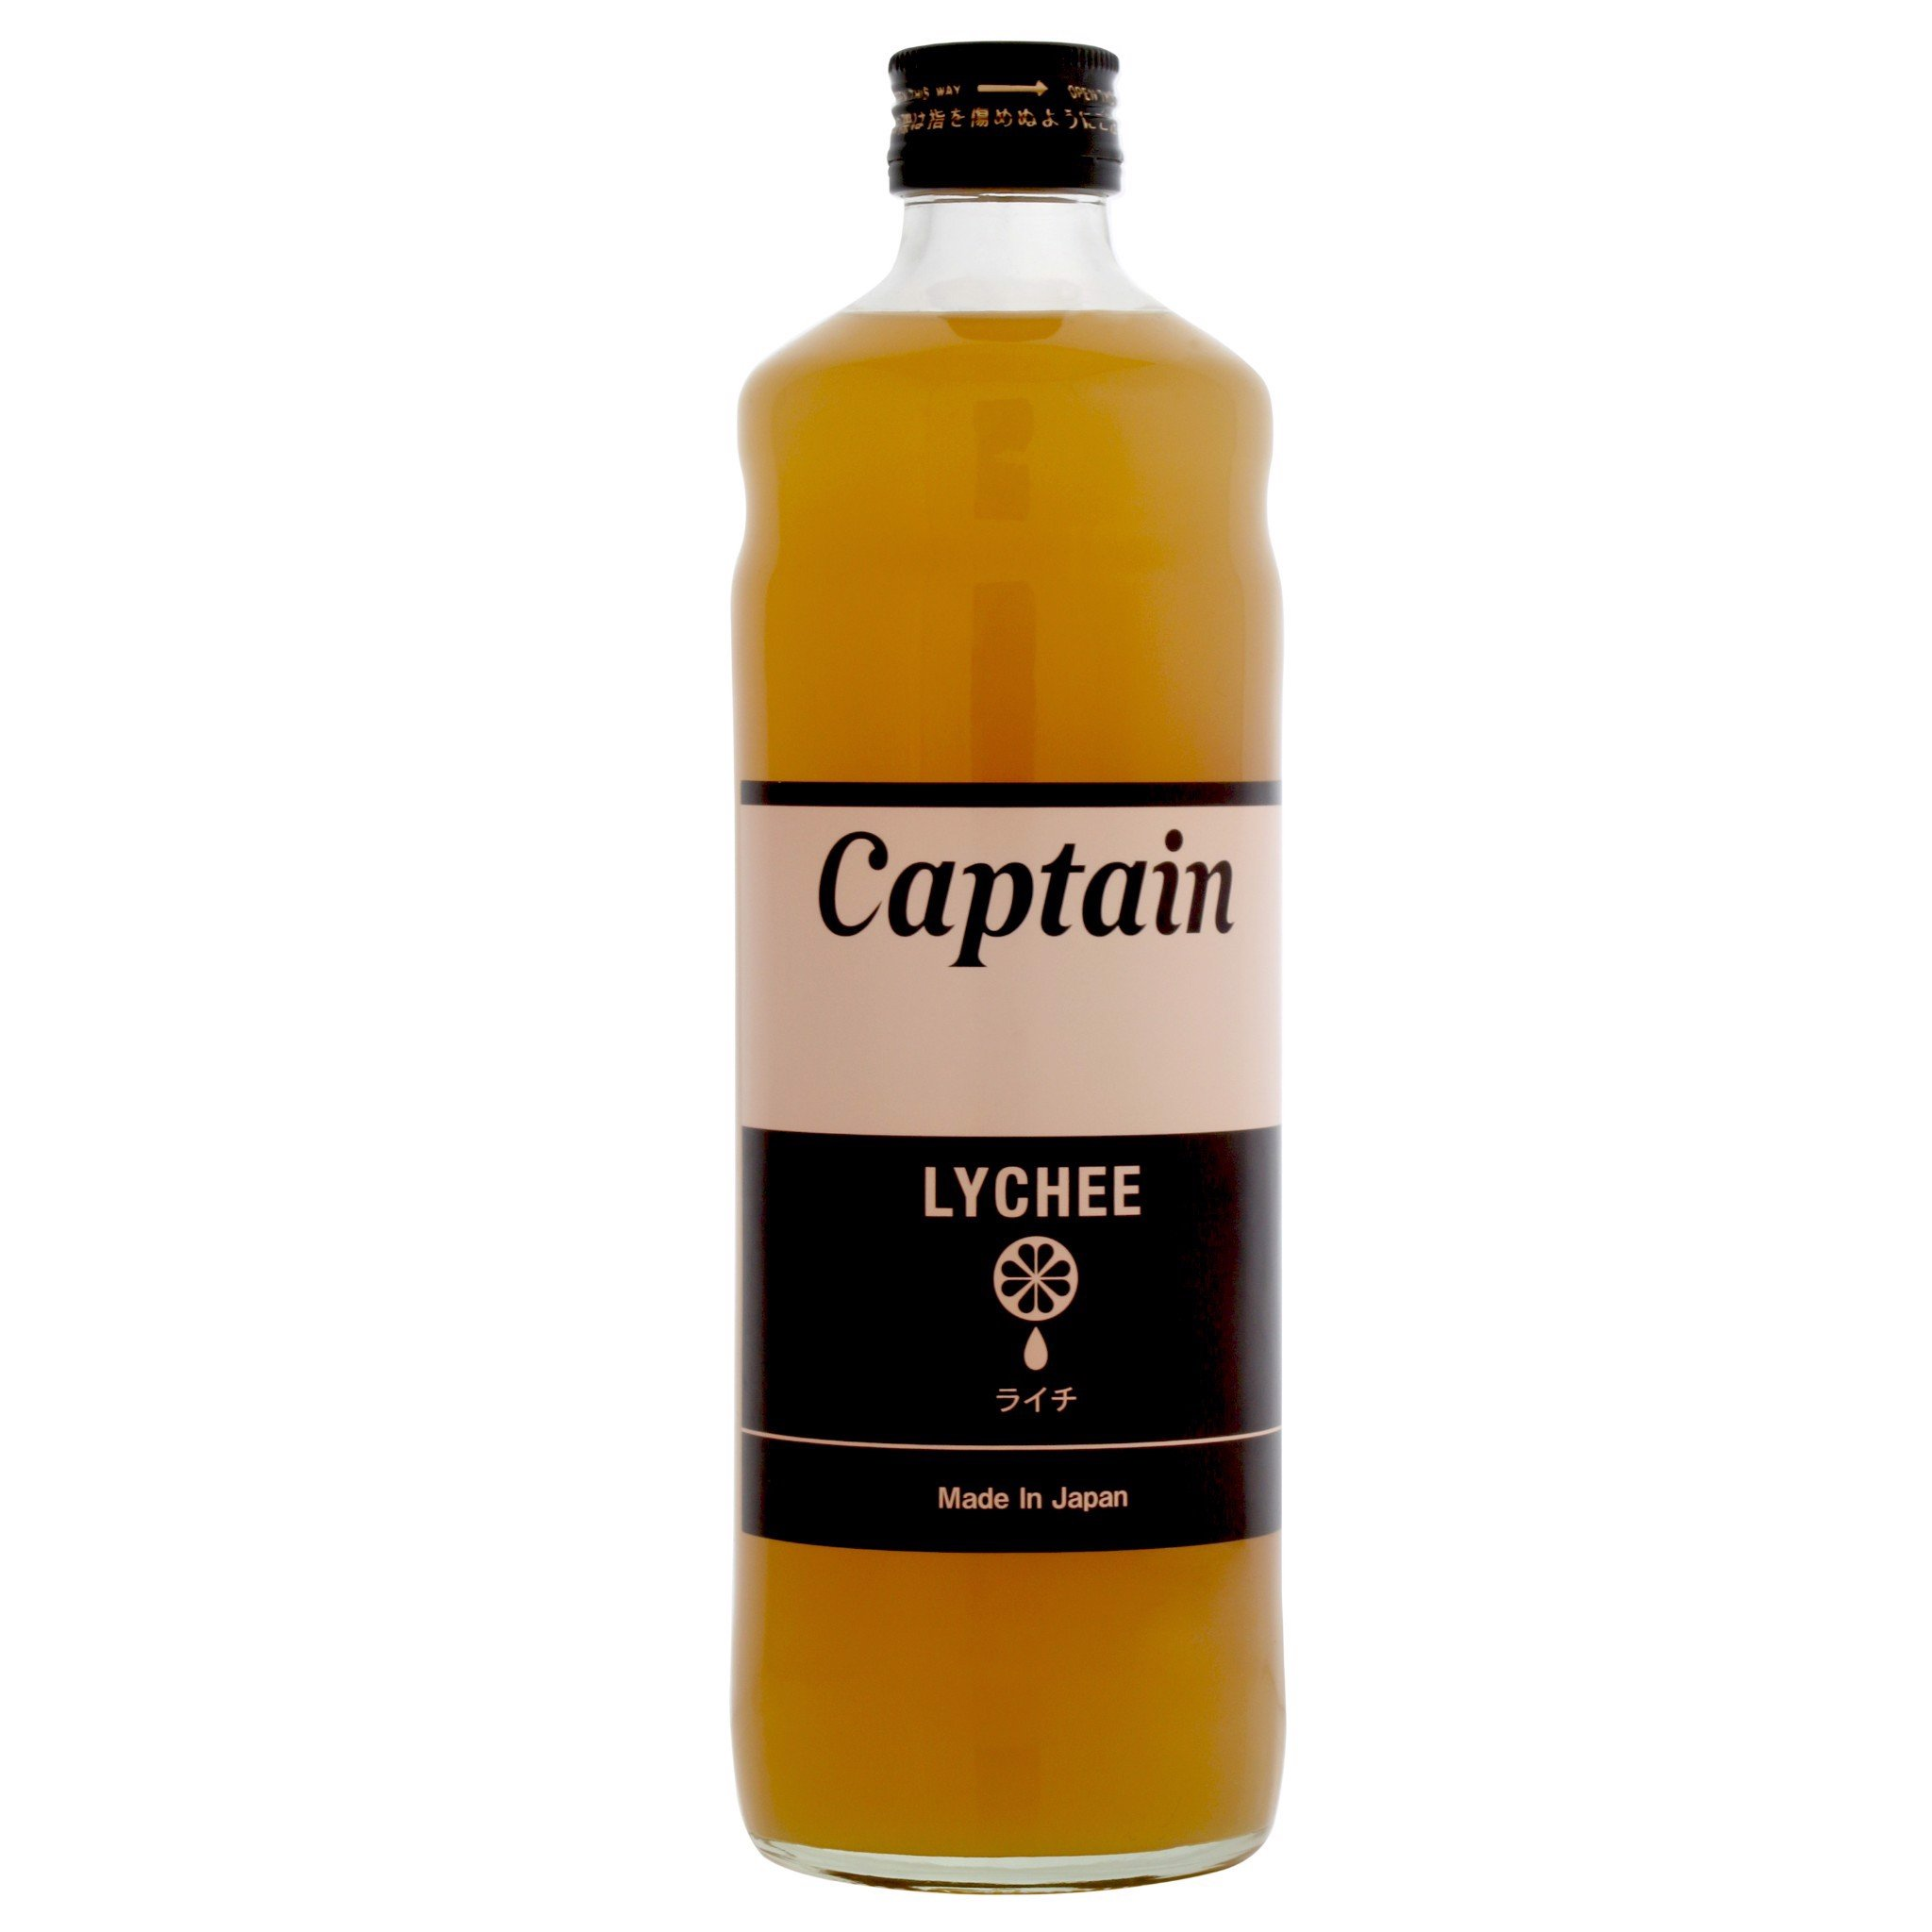 Syrup Lychee (Vải) - Captain